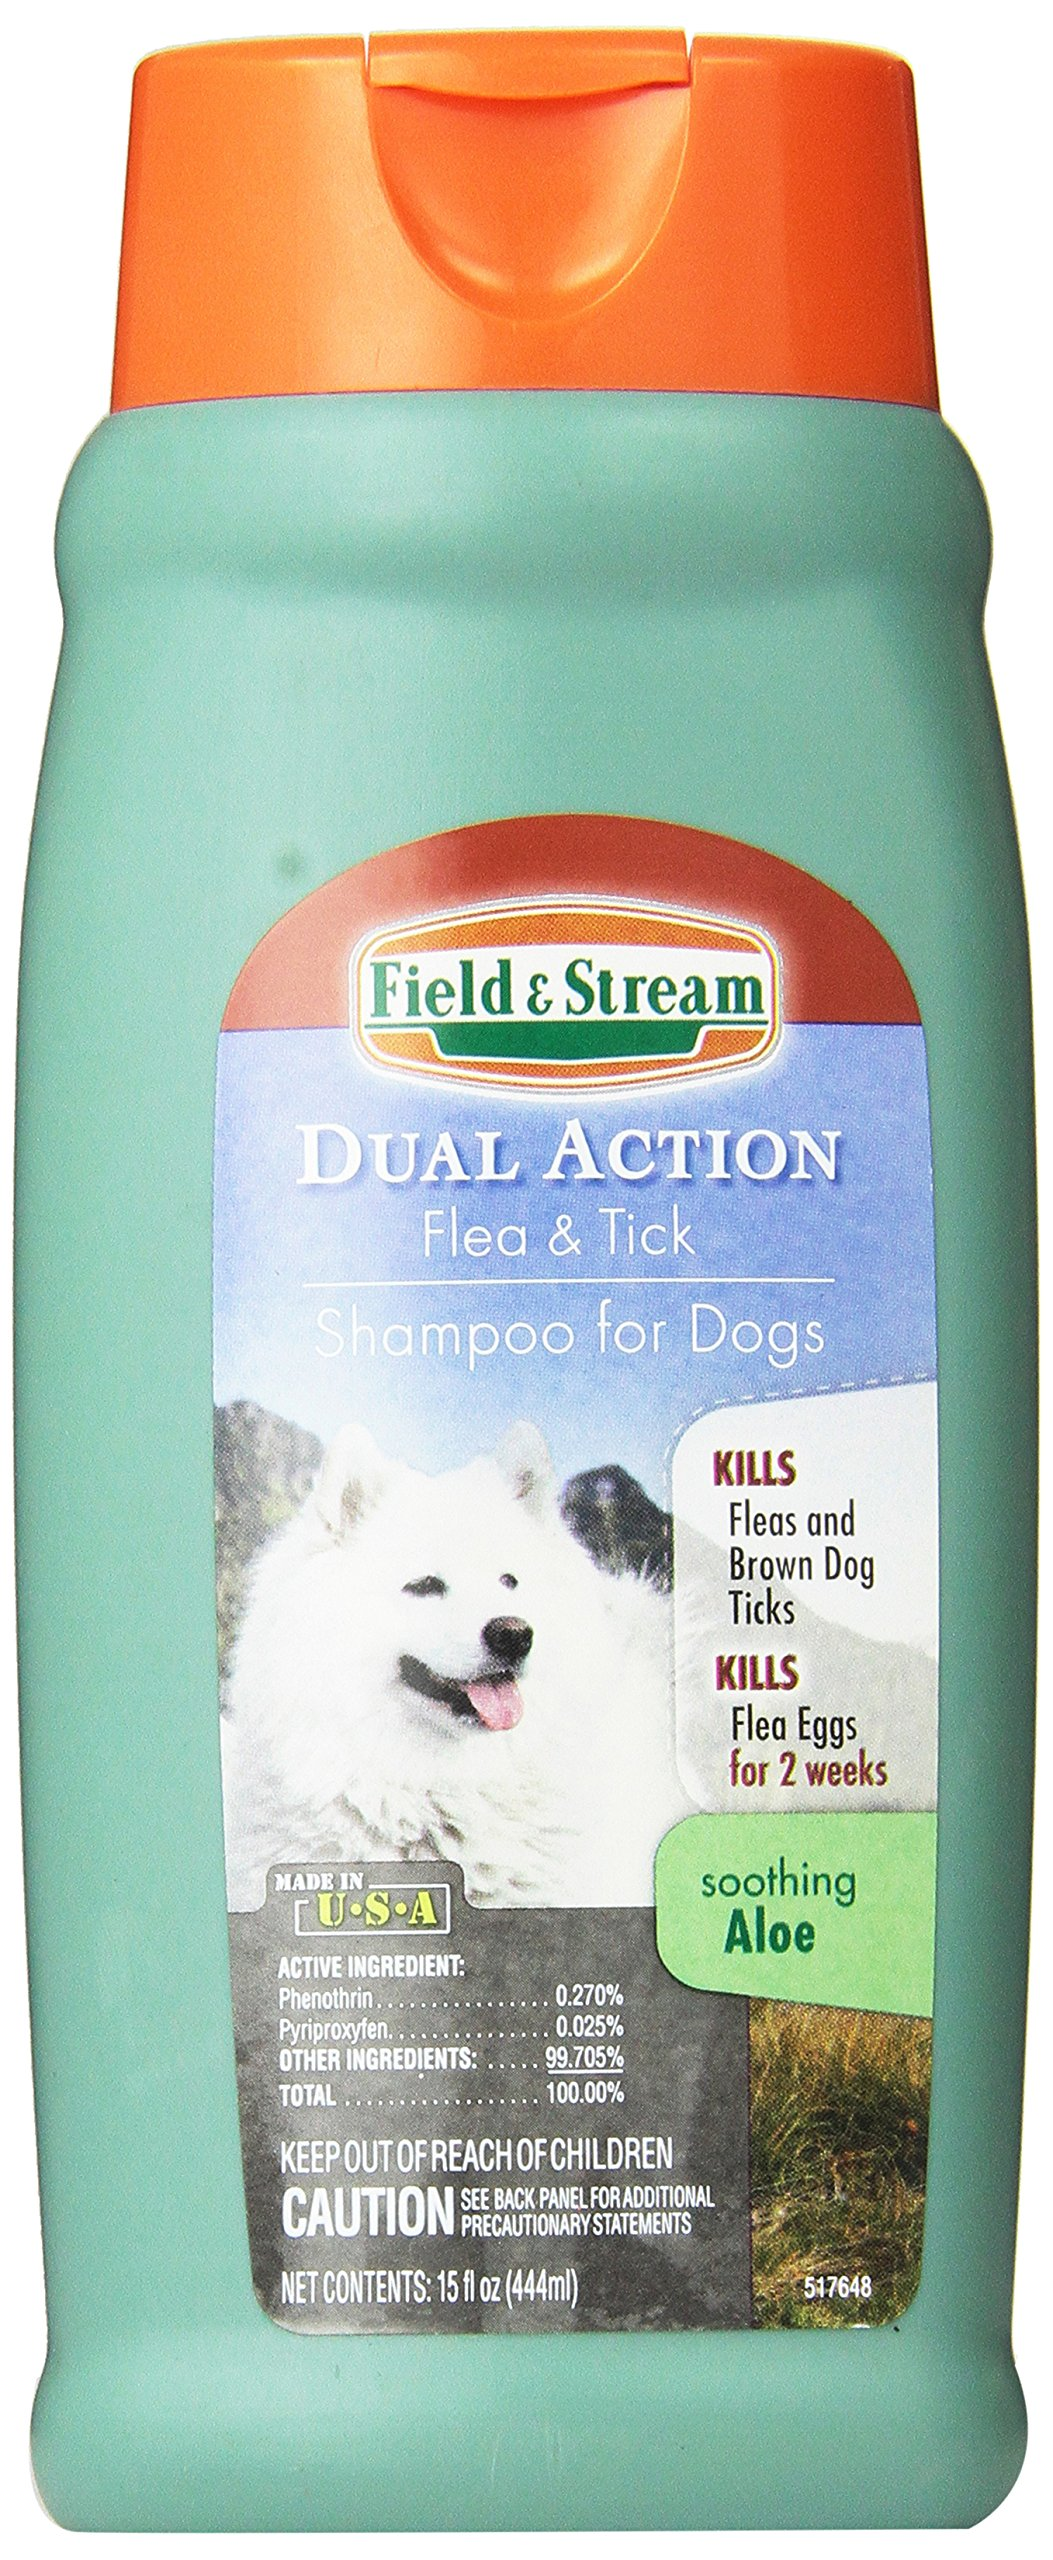 Field & Stream Dual Action Flea and Tick Shampoo for Dogs, 15-Ounce